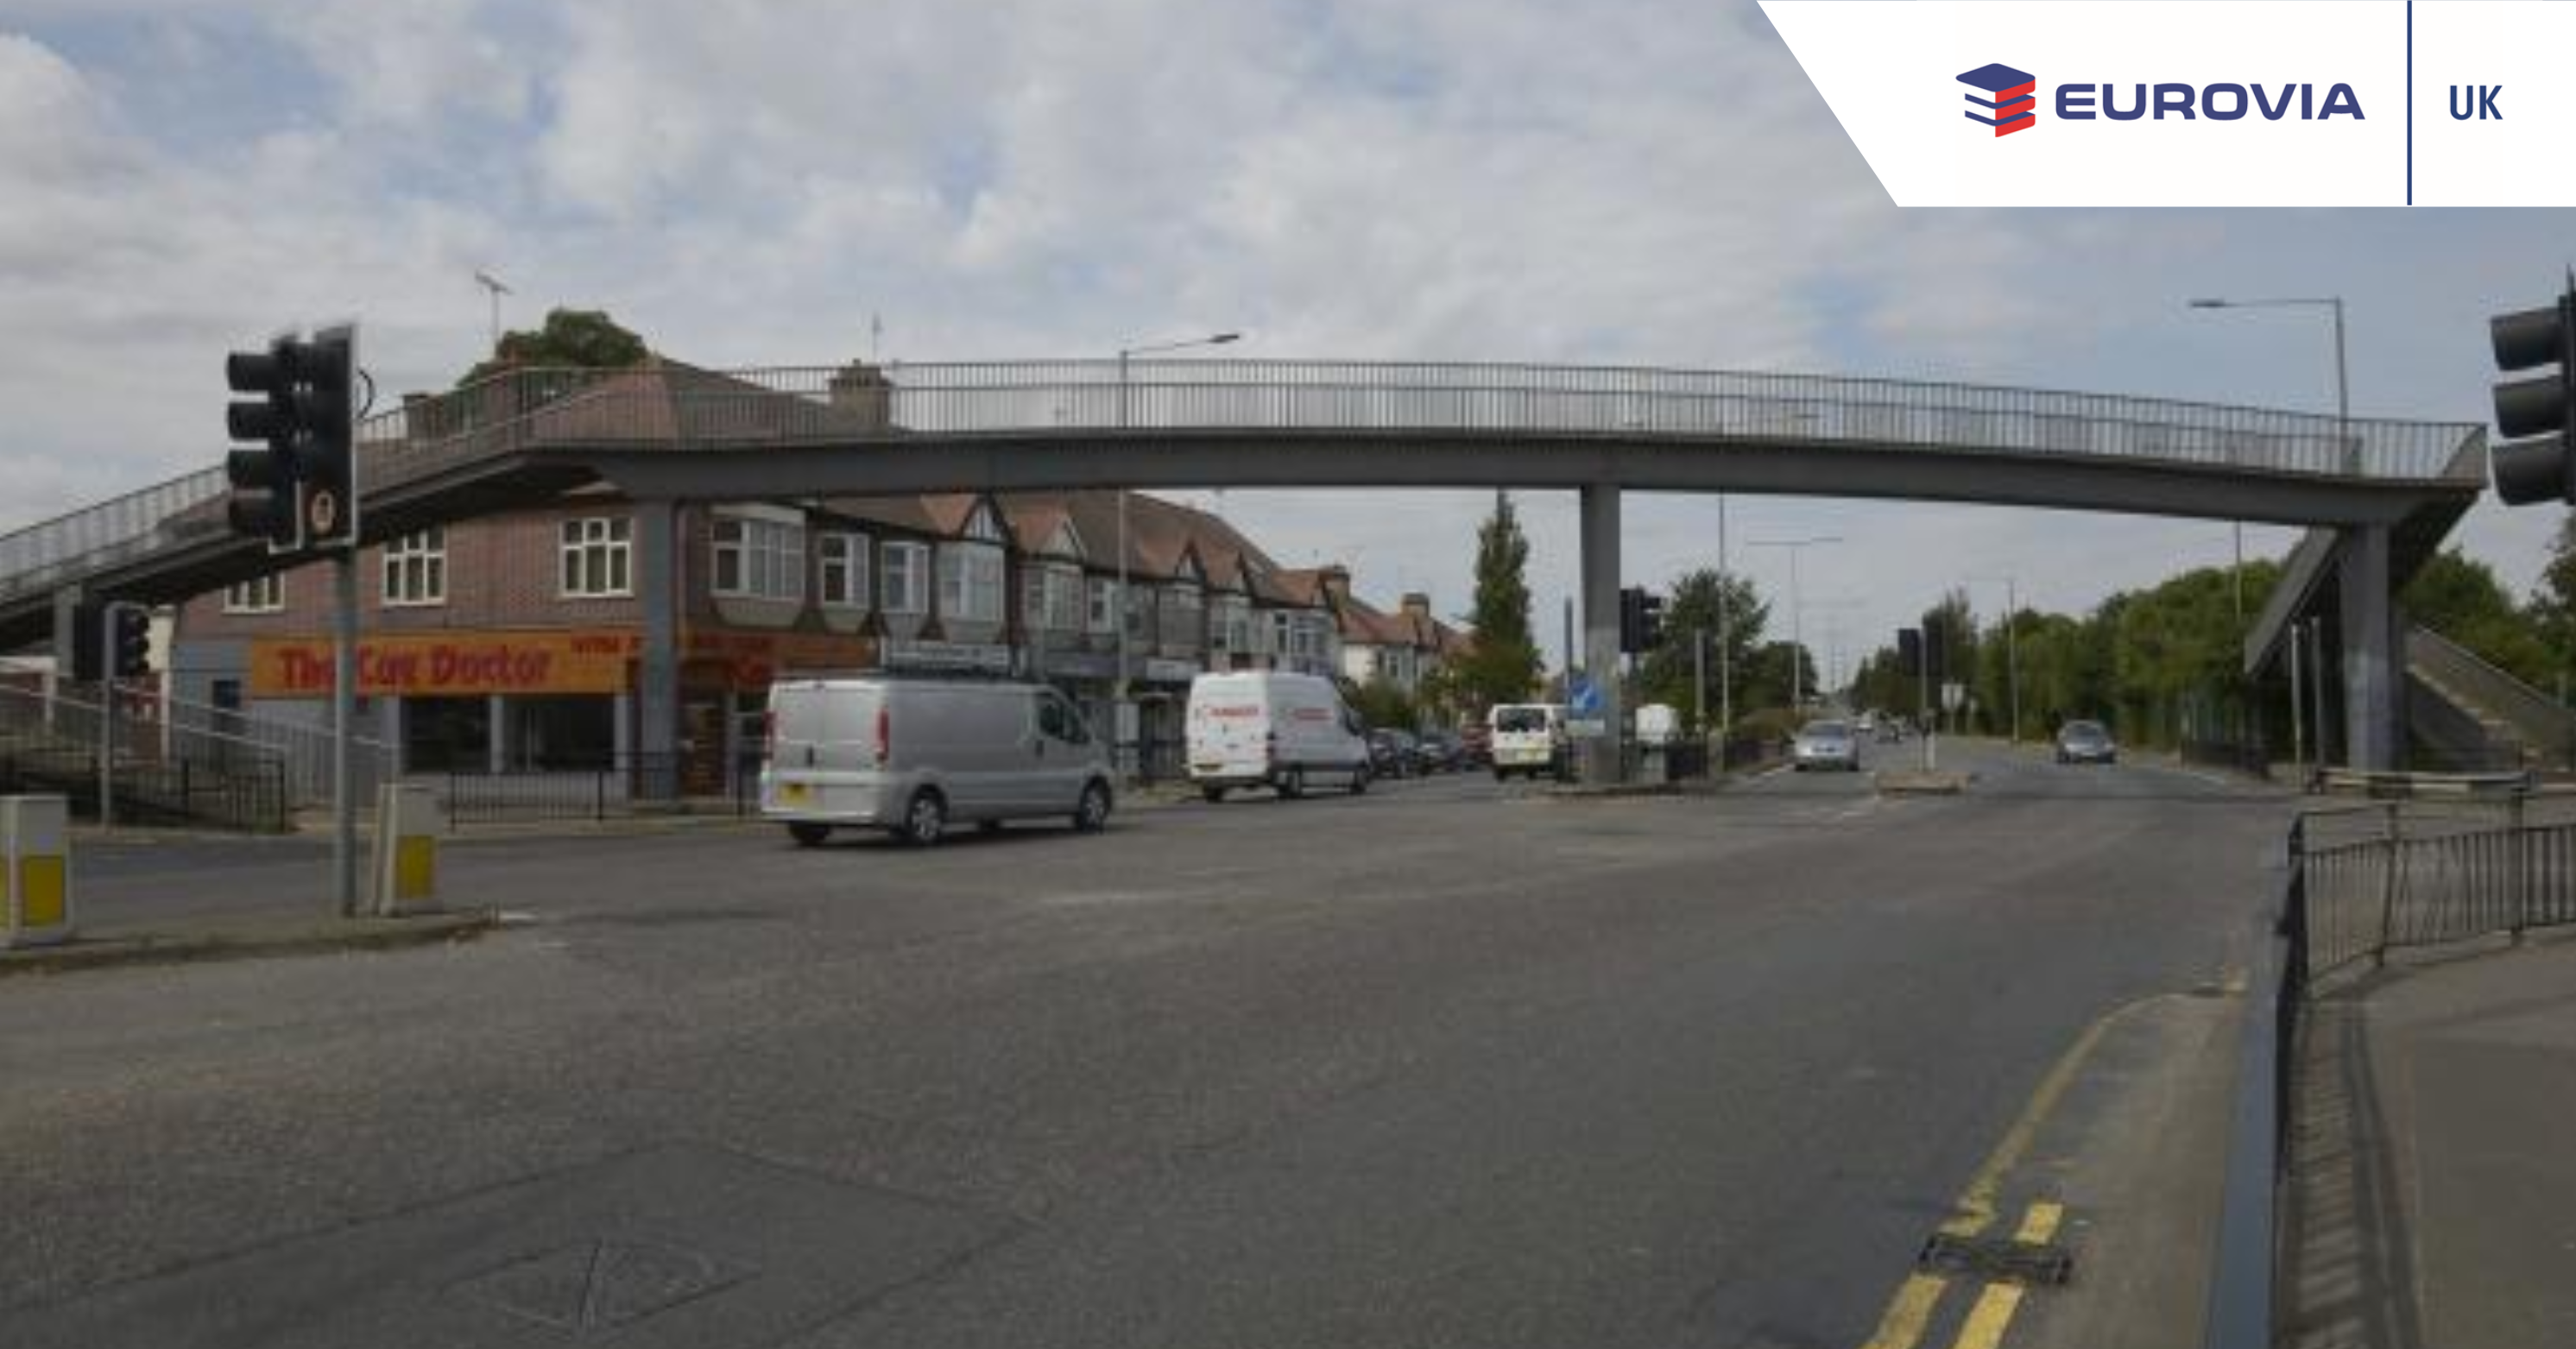 Eurovia-uk-A127-Bell-Junction-project-paperless-construction